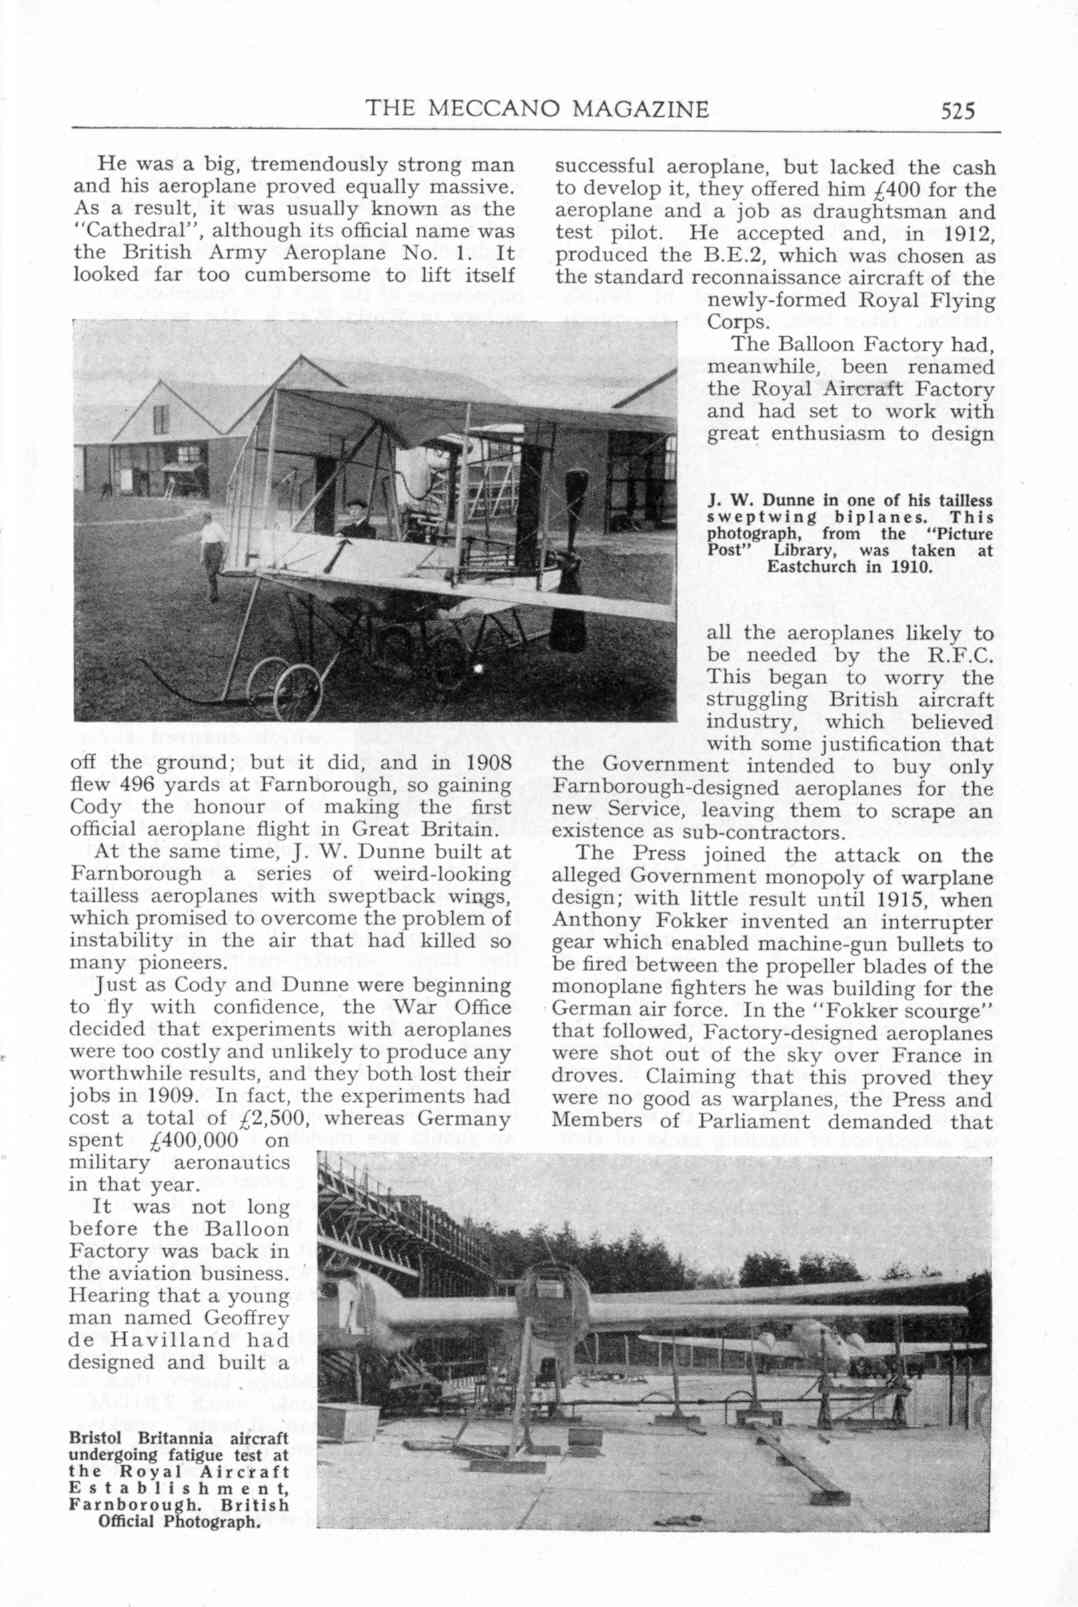 UK Meccano Magazine October 1955 Page 525